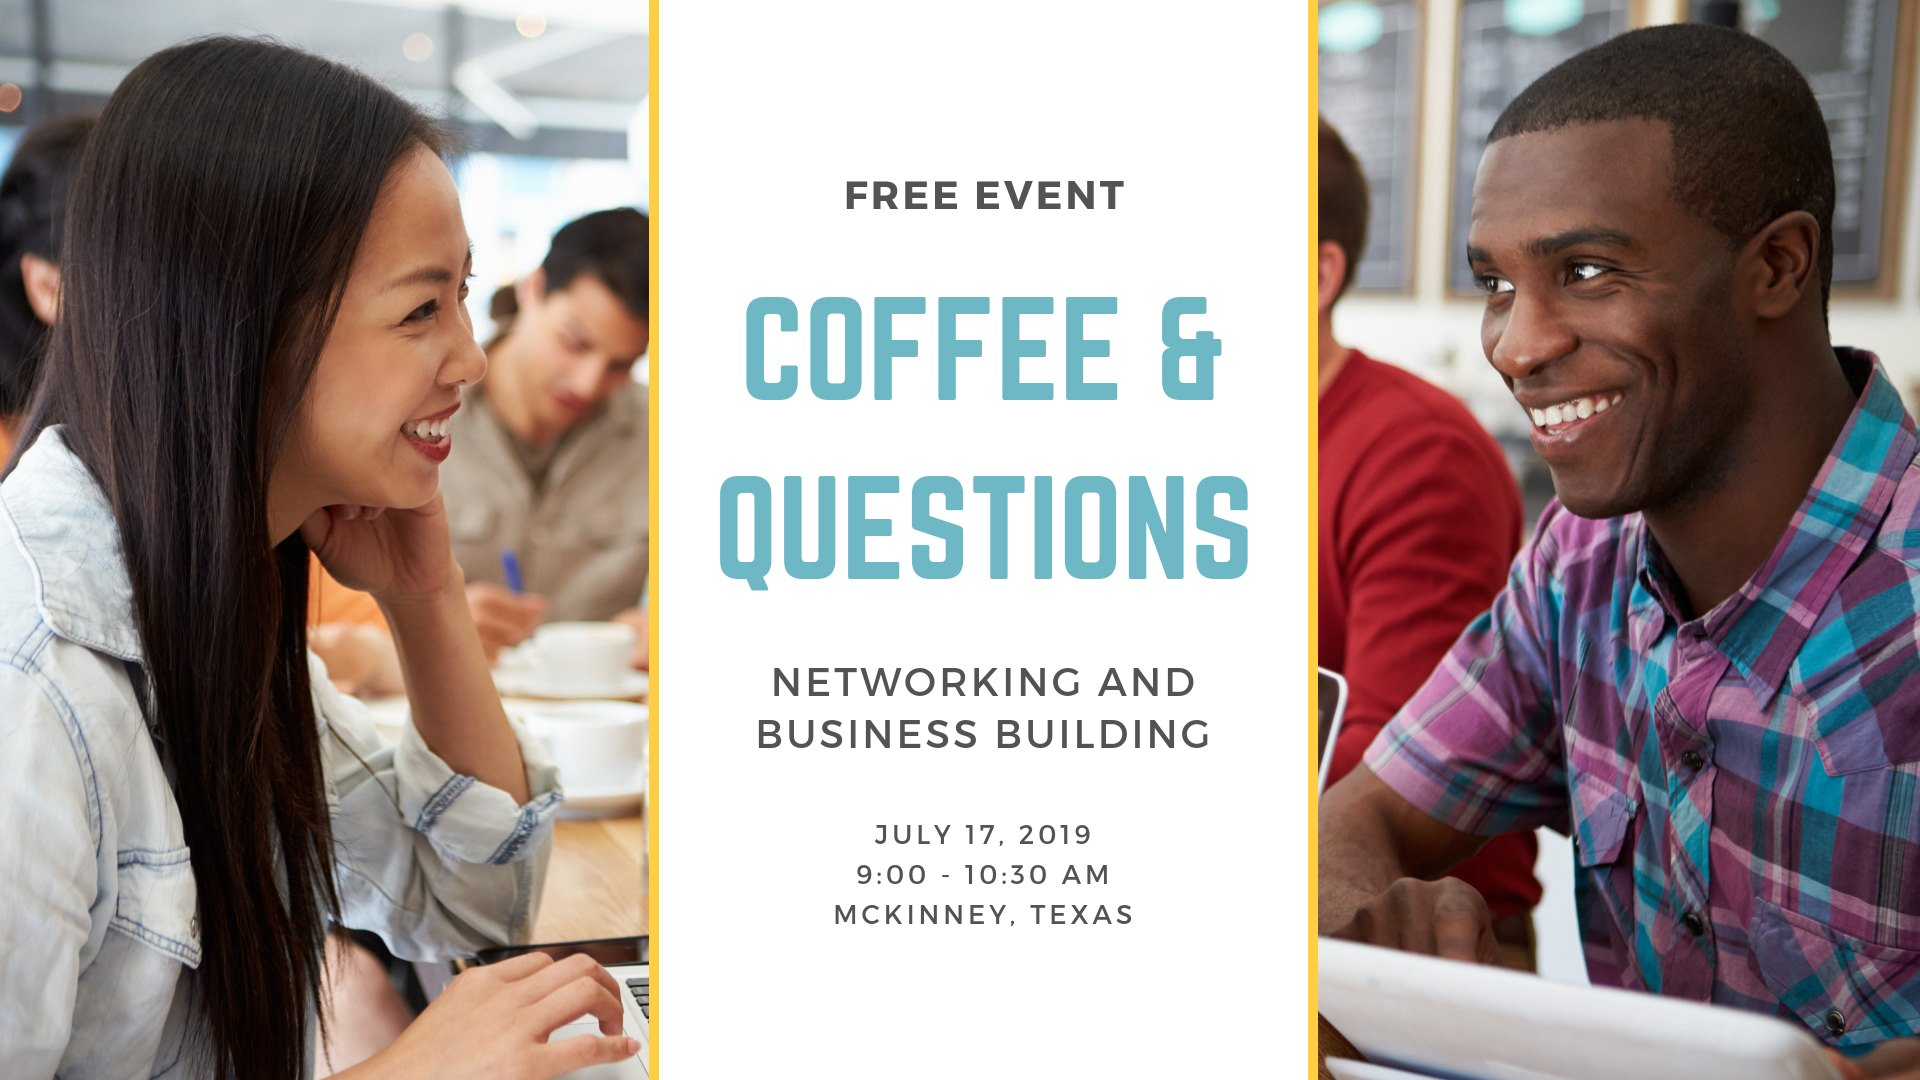 Coffee & Questions July 17 OTB Angie Brumley McKinney TX